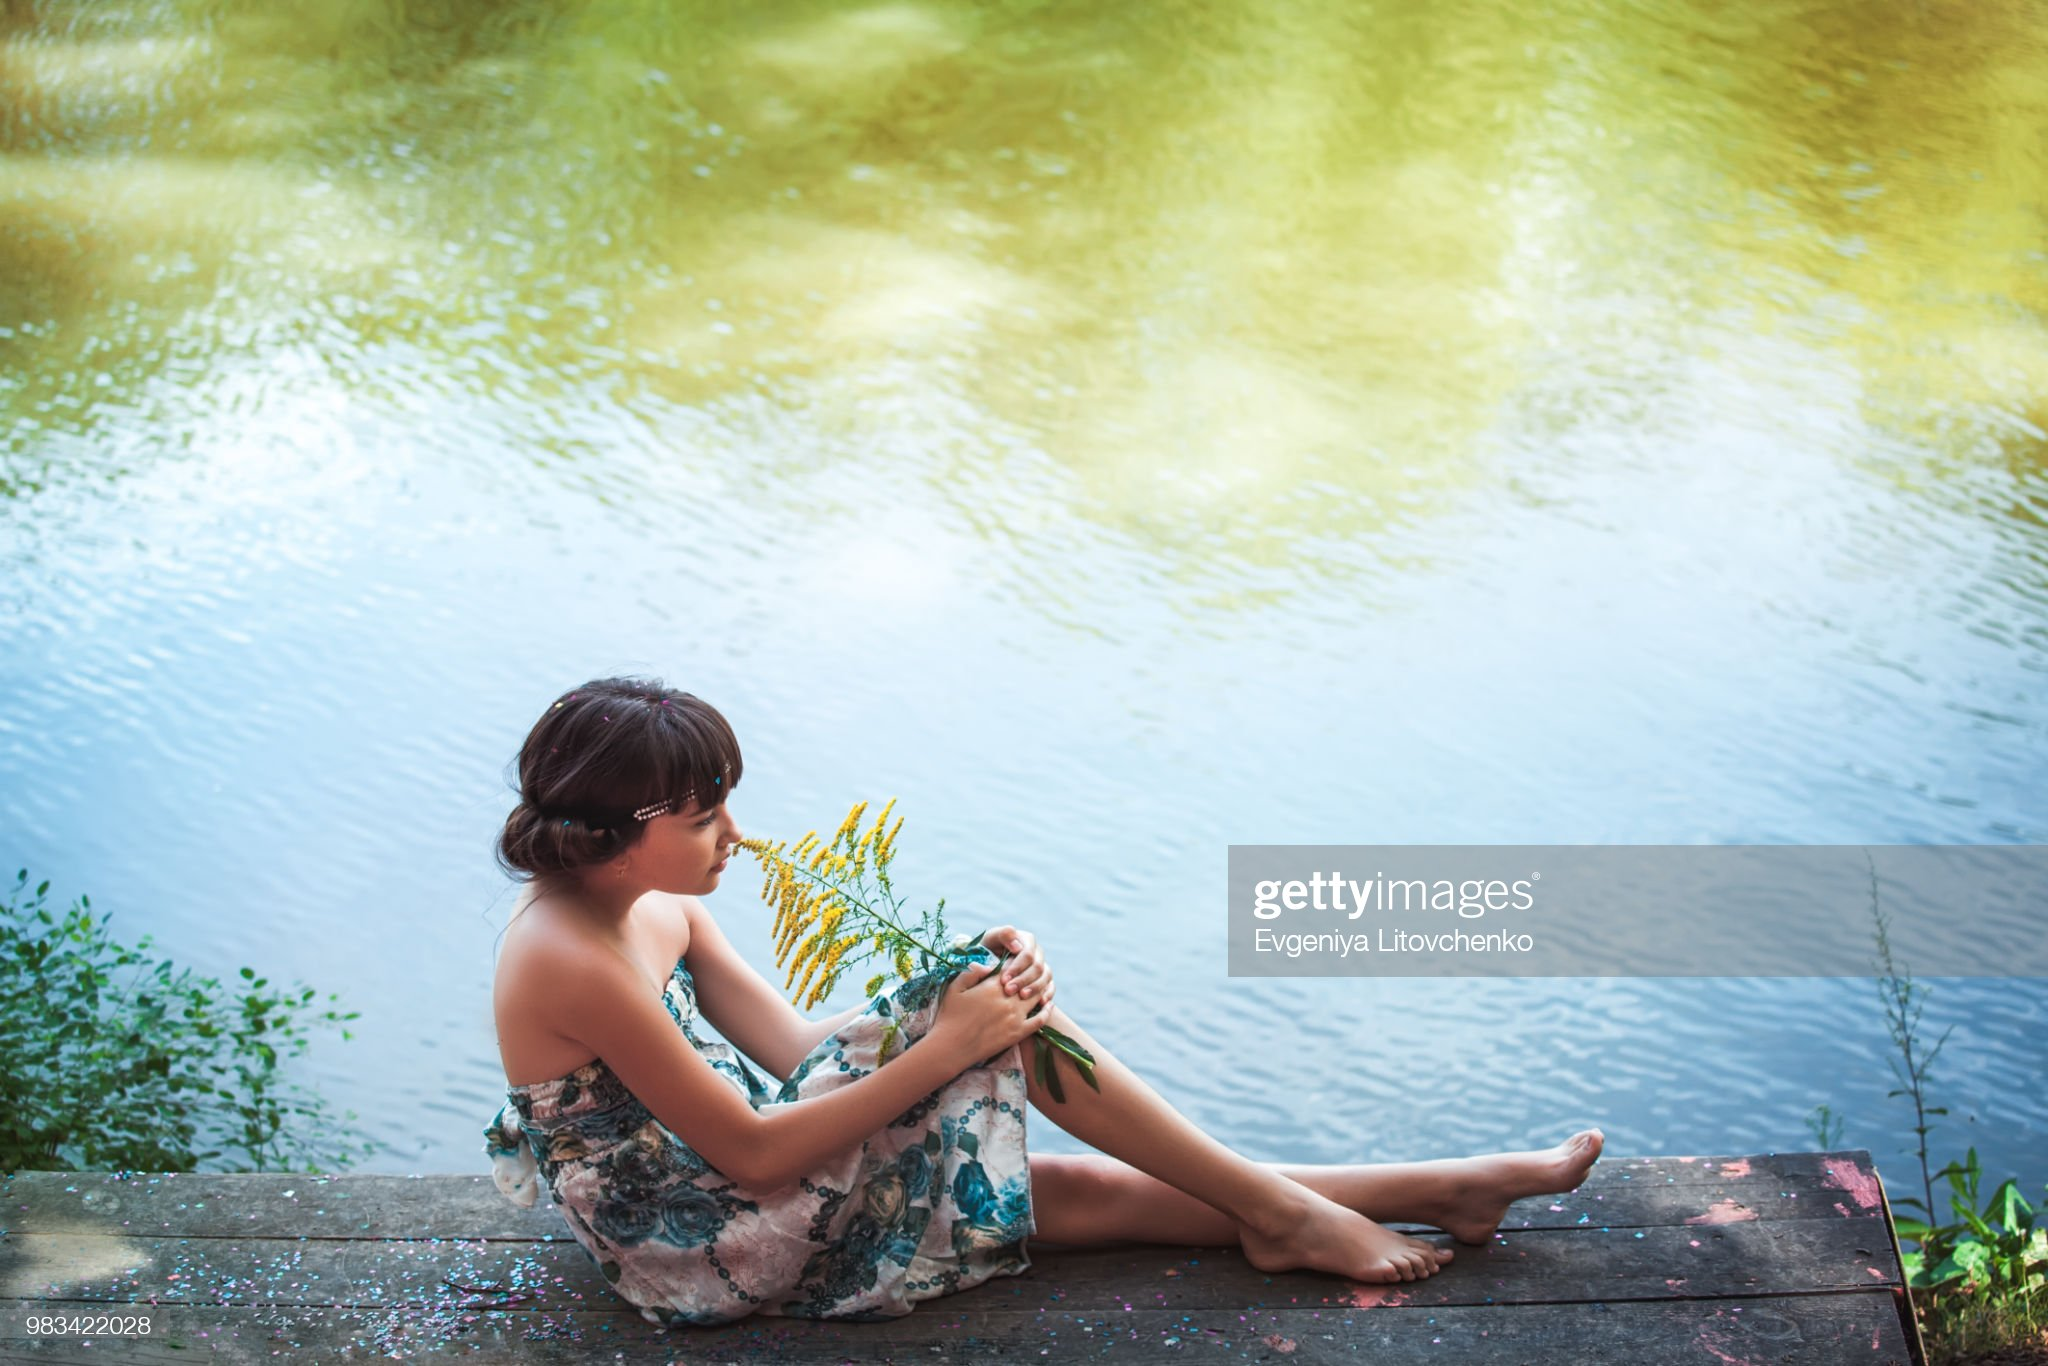 https://media.gettyimages.com/photos/girl-sitting-by-a-lake-picture-id983422028?s=2048x2048